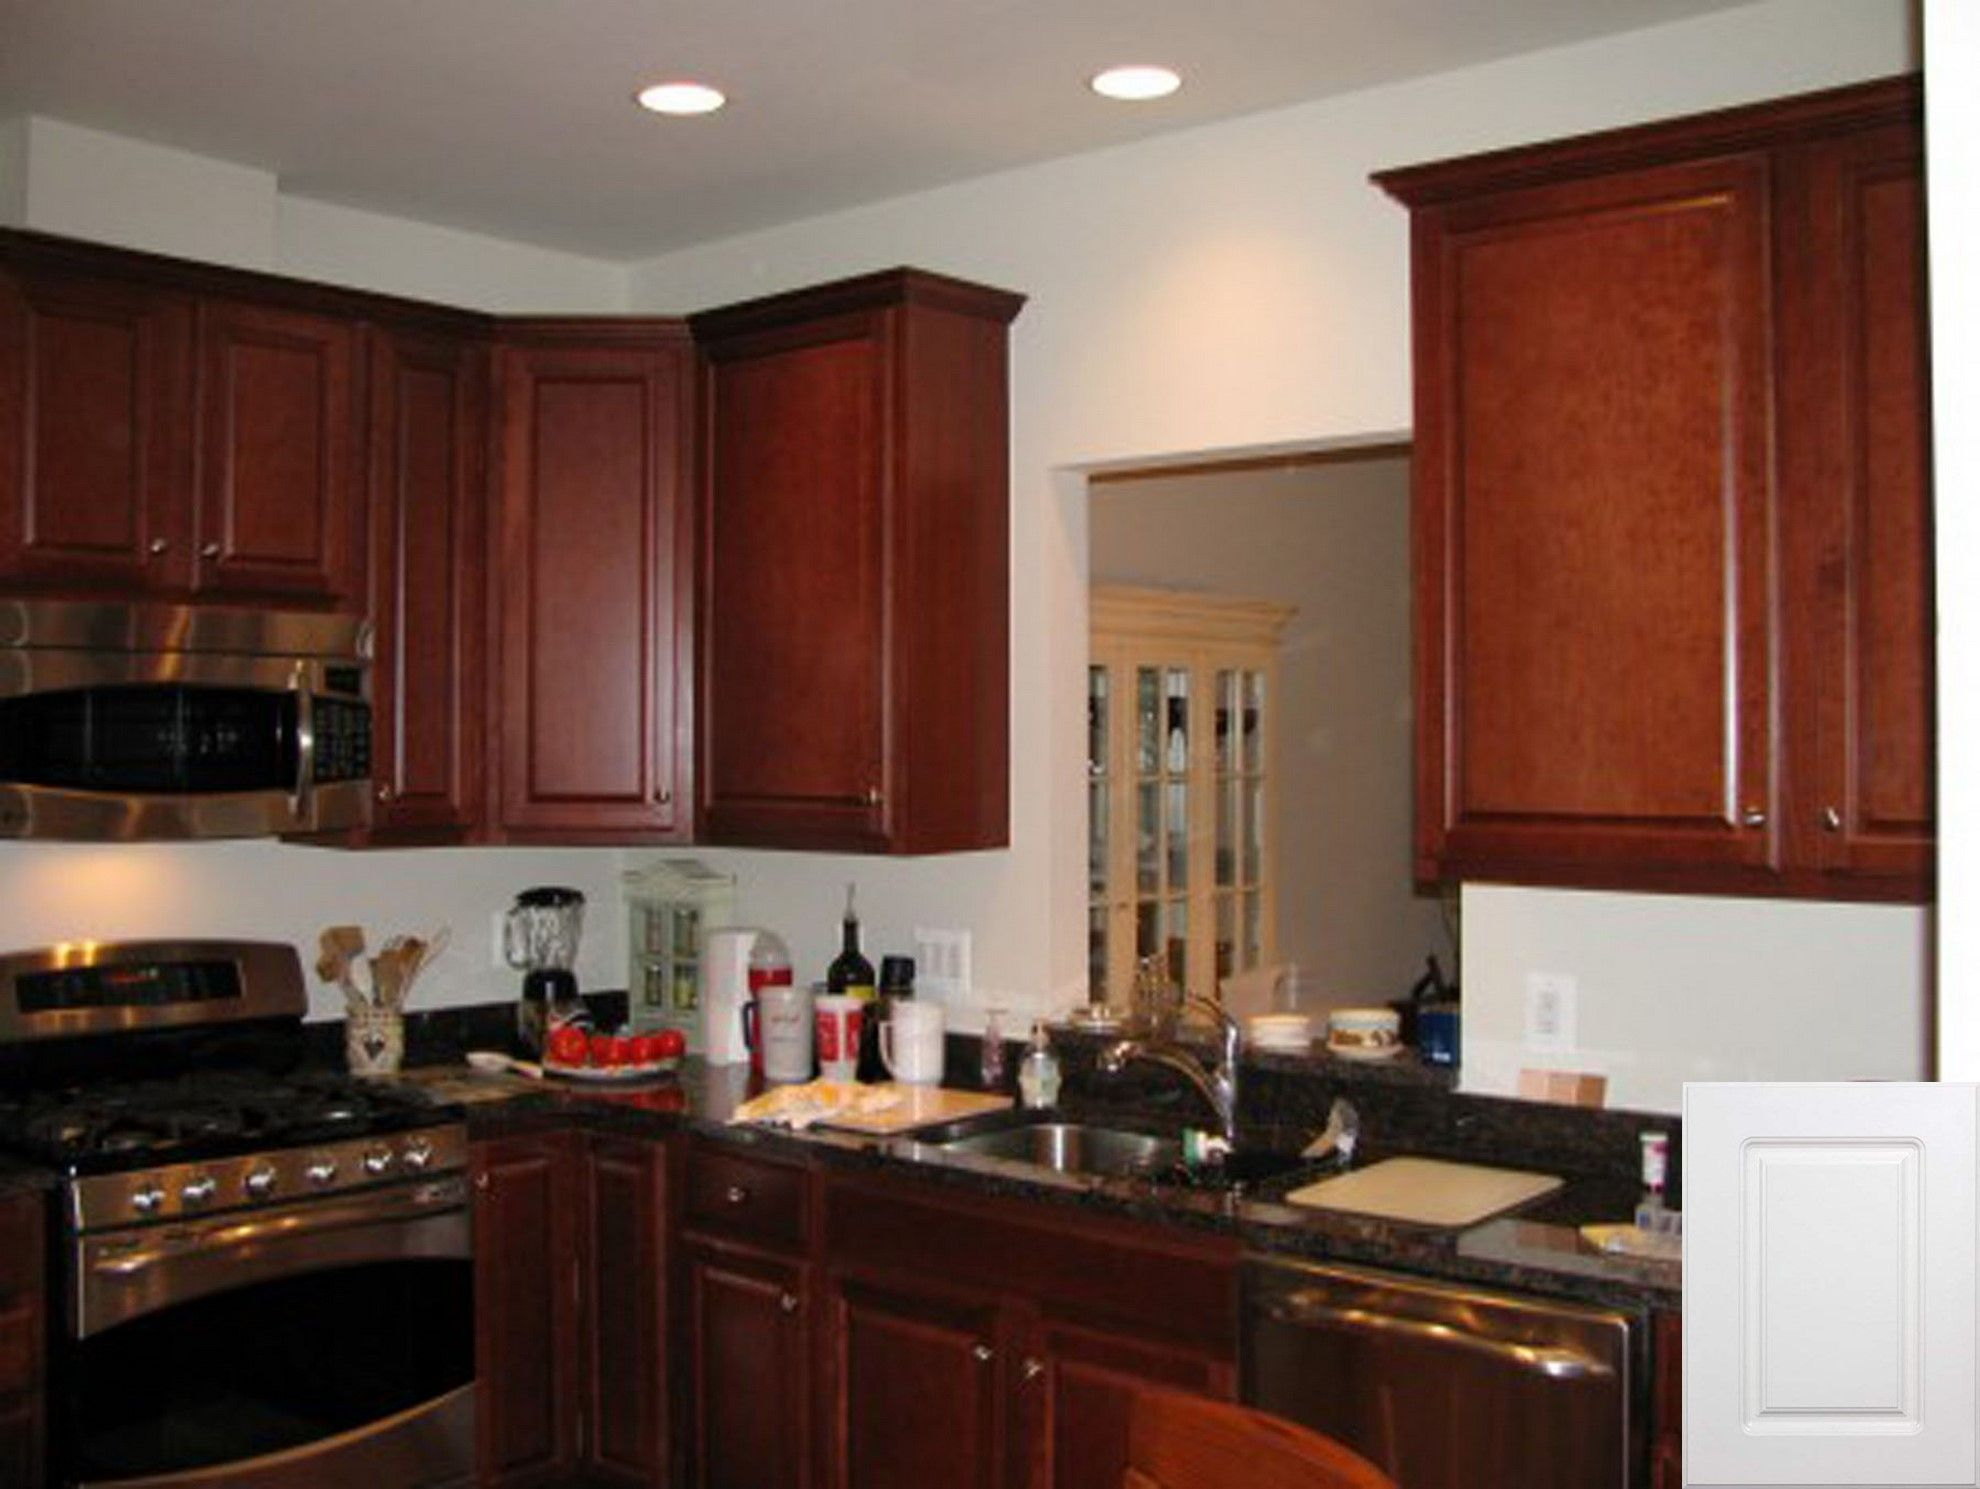 Why I Chose To Reface My Kitchen Cabinets And Diy Kitchen Cabinets Edmonton Inexpensive Transitional Kitchen Design Brown Cabinets Kitchen Colors